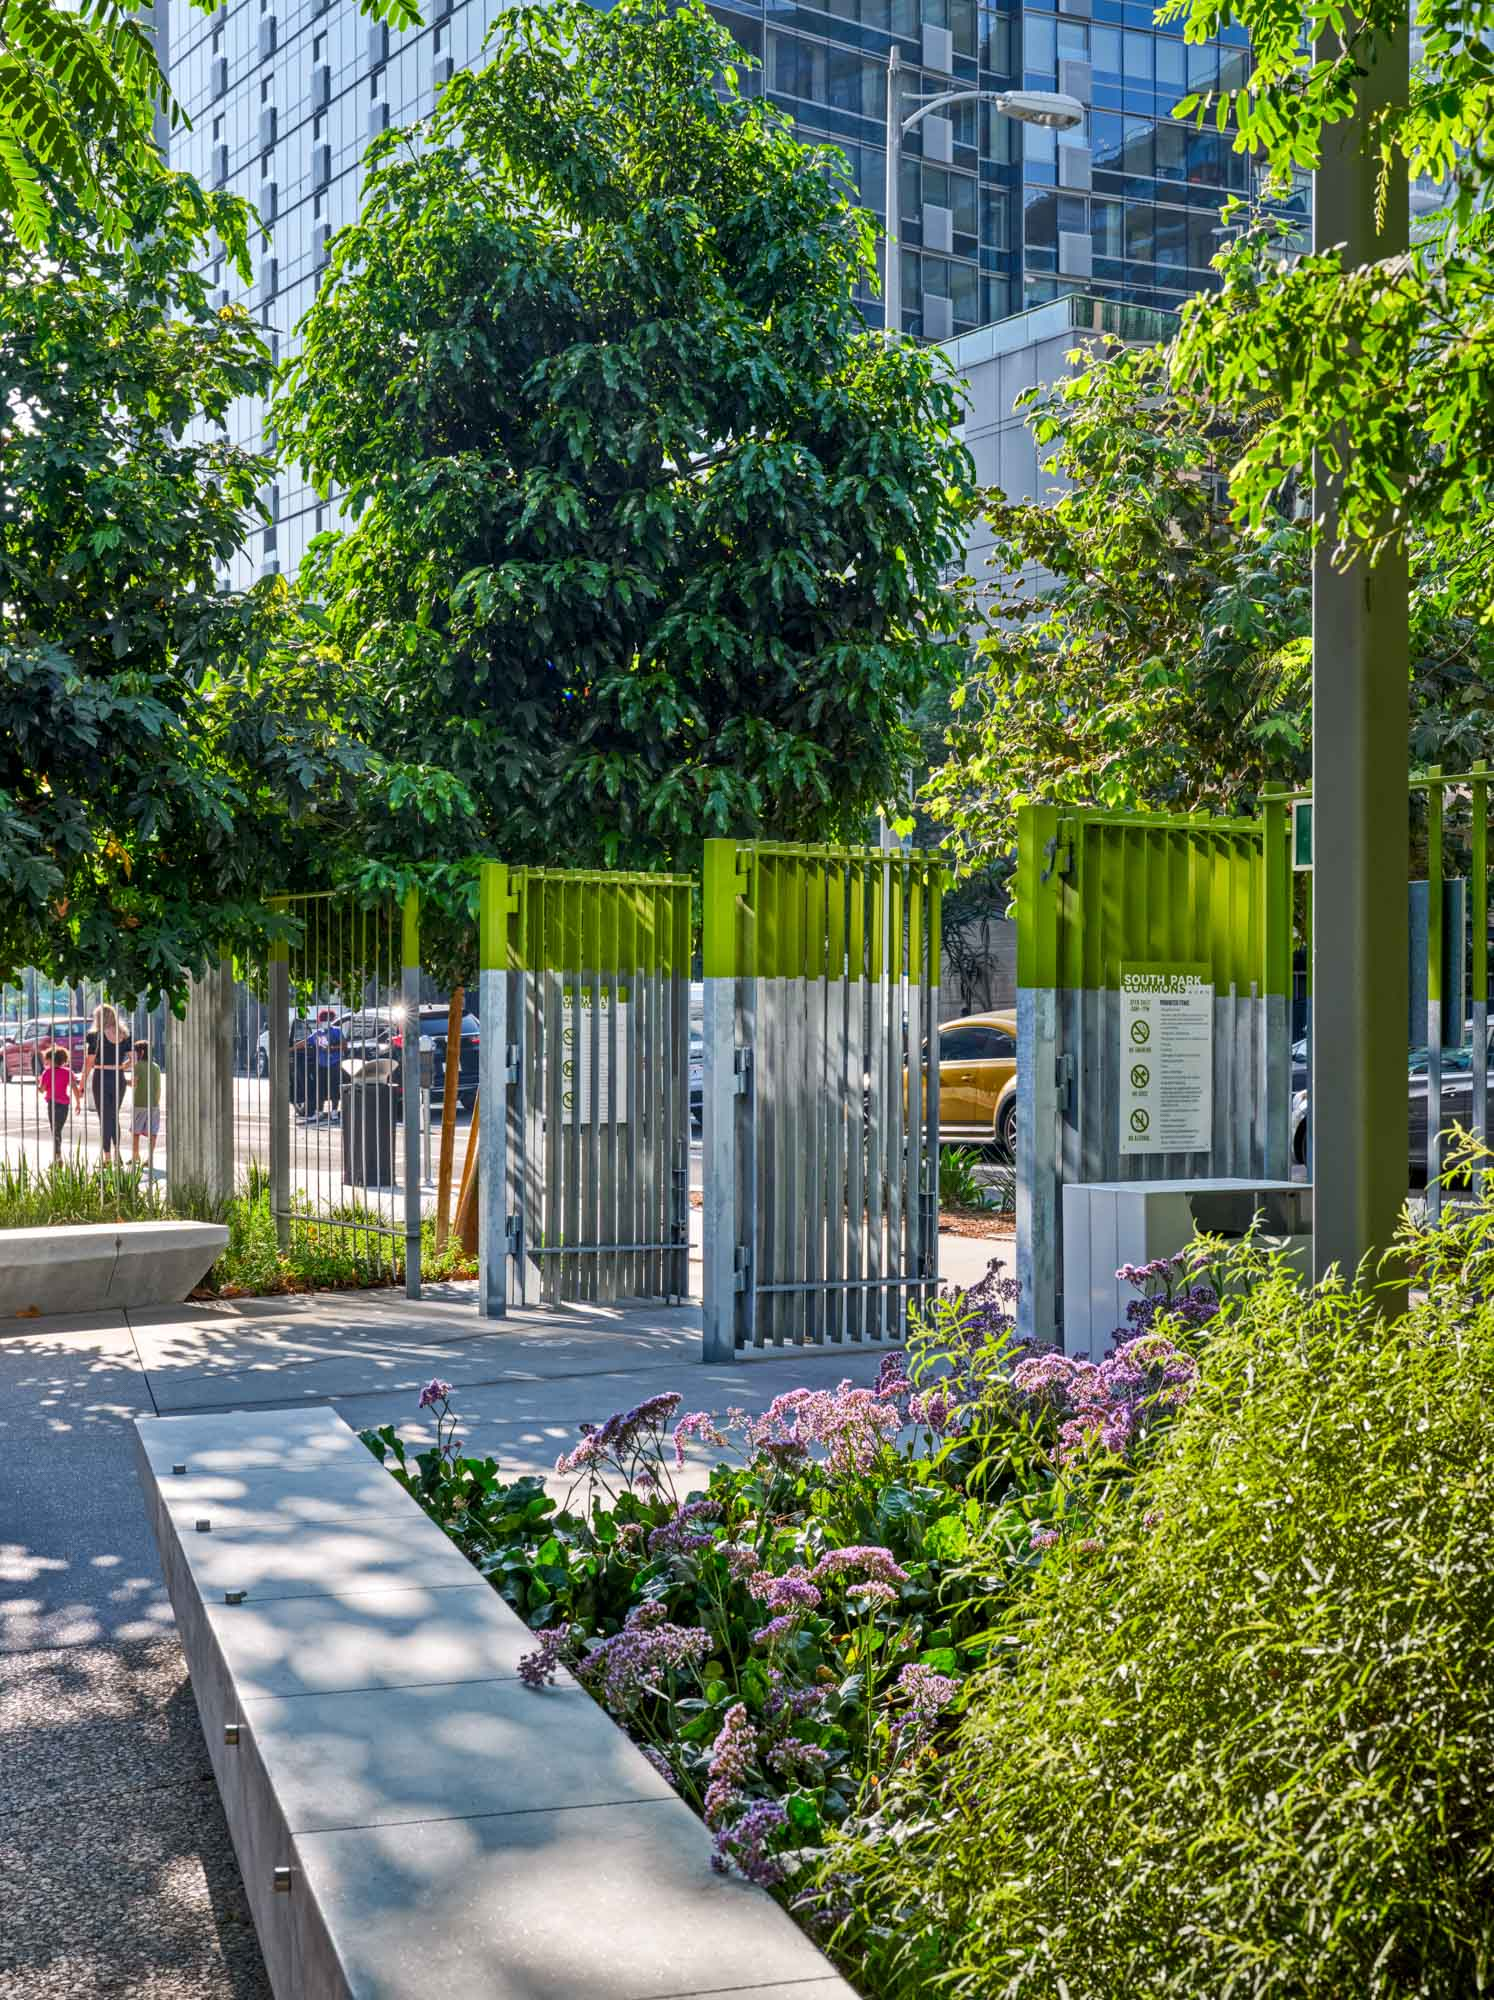 gates to south park commons surrounded by bushes and trees